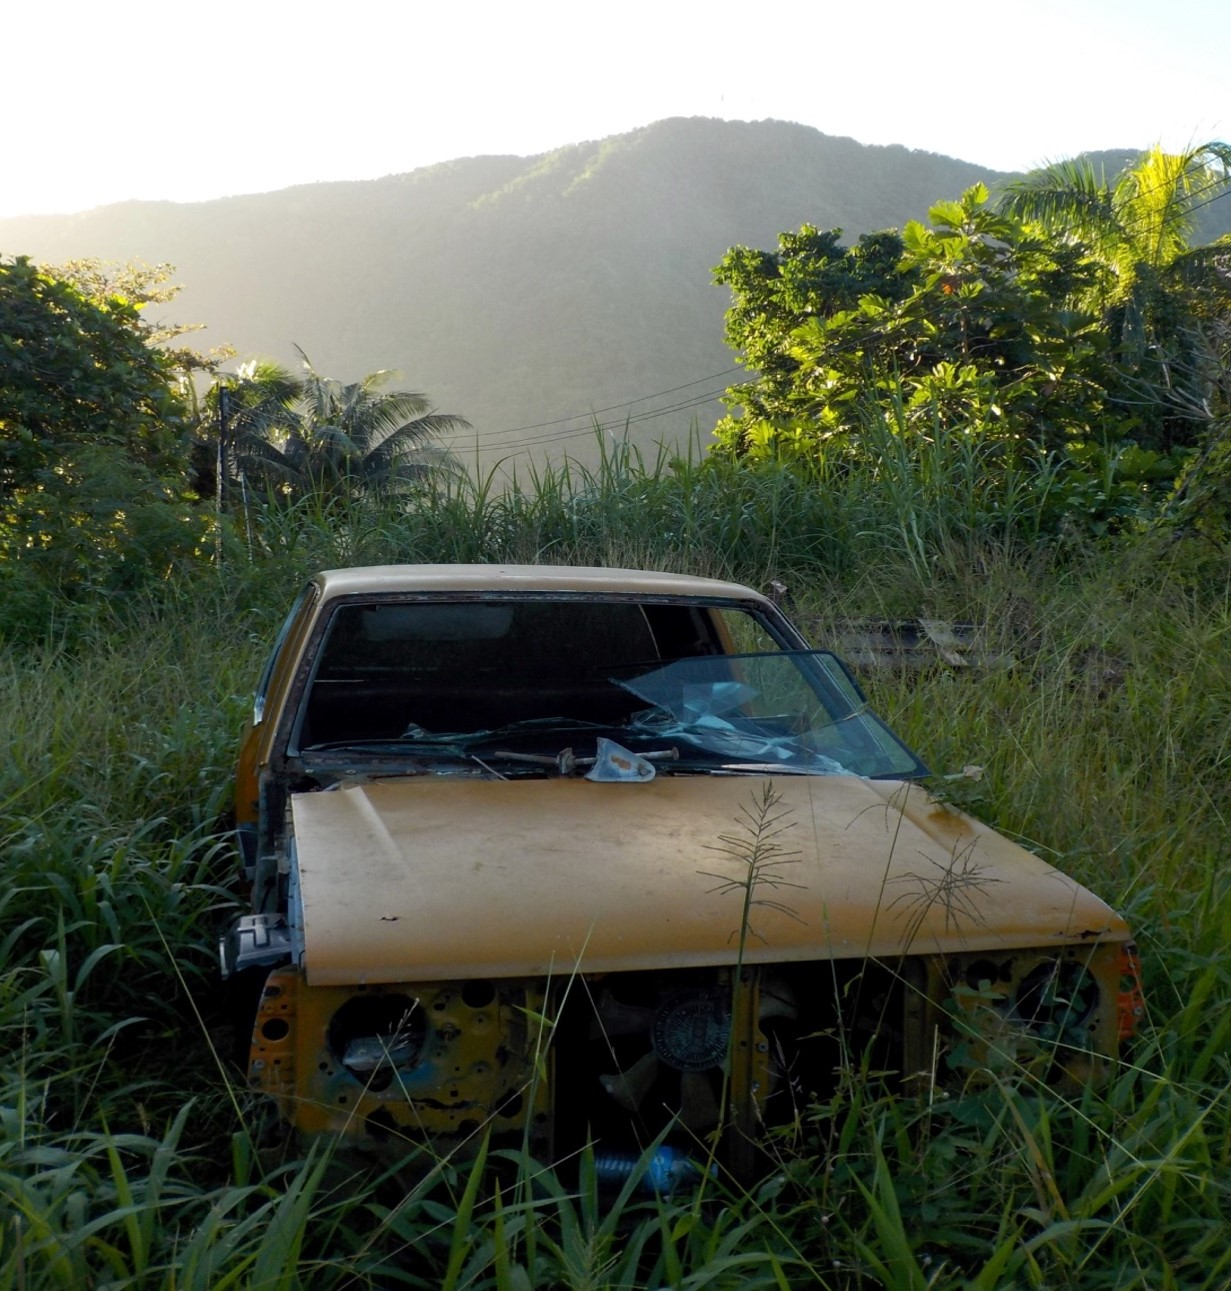 rusted car in Tutuila